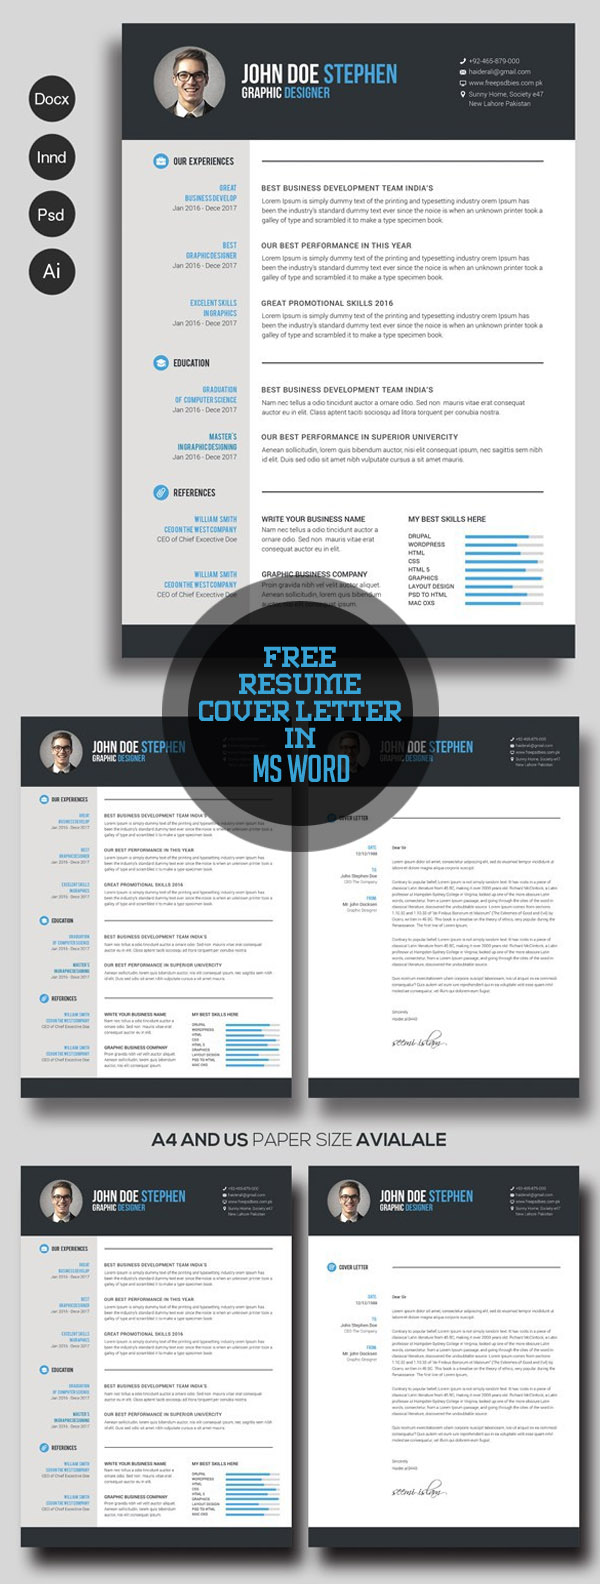 free resume cover letter in ms word